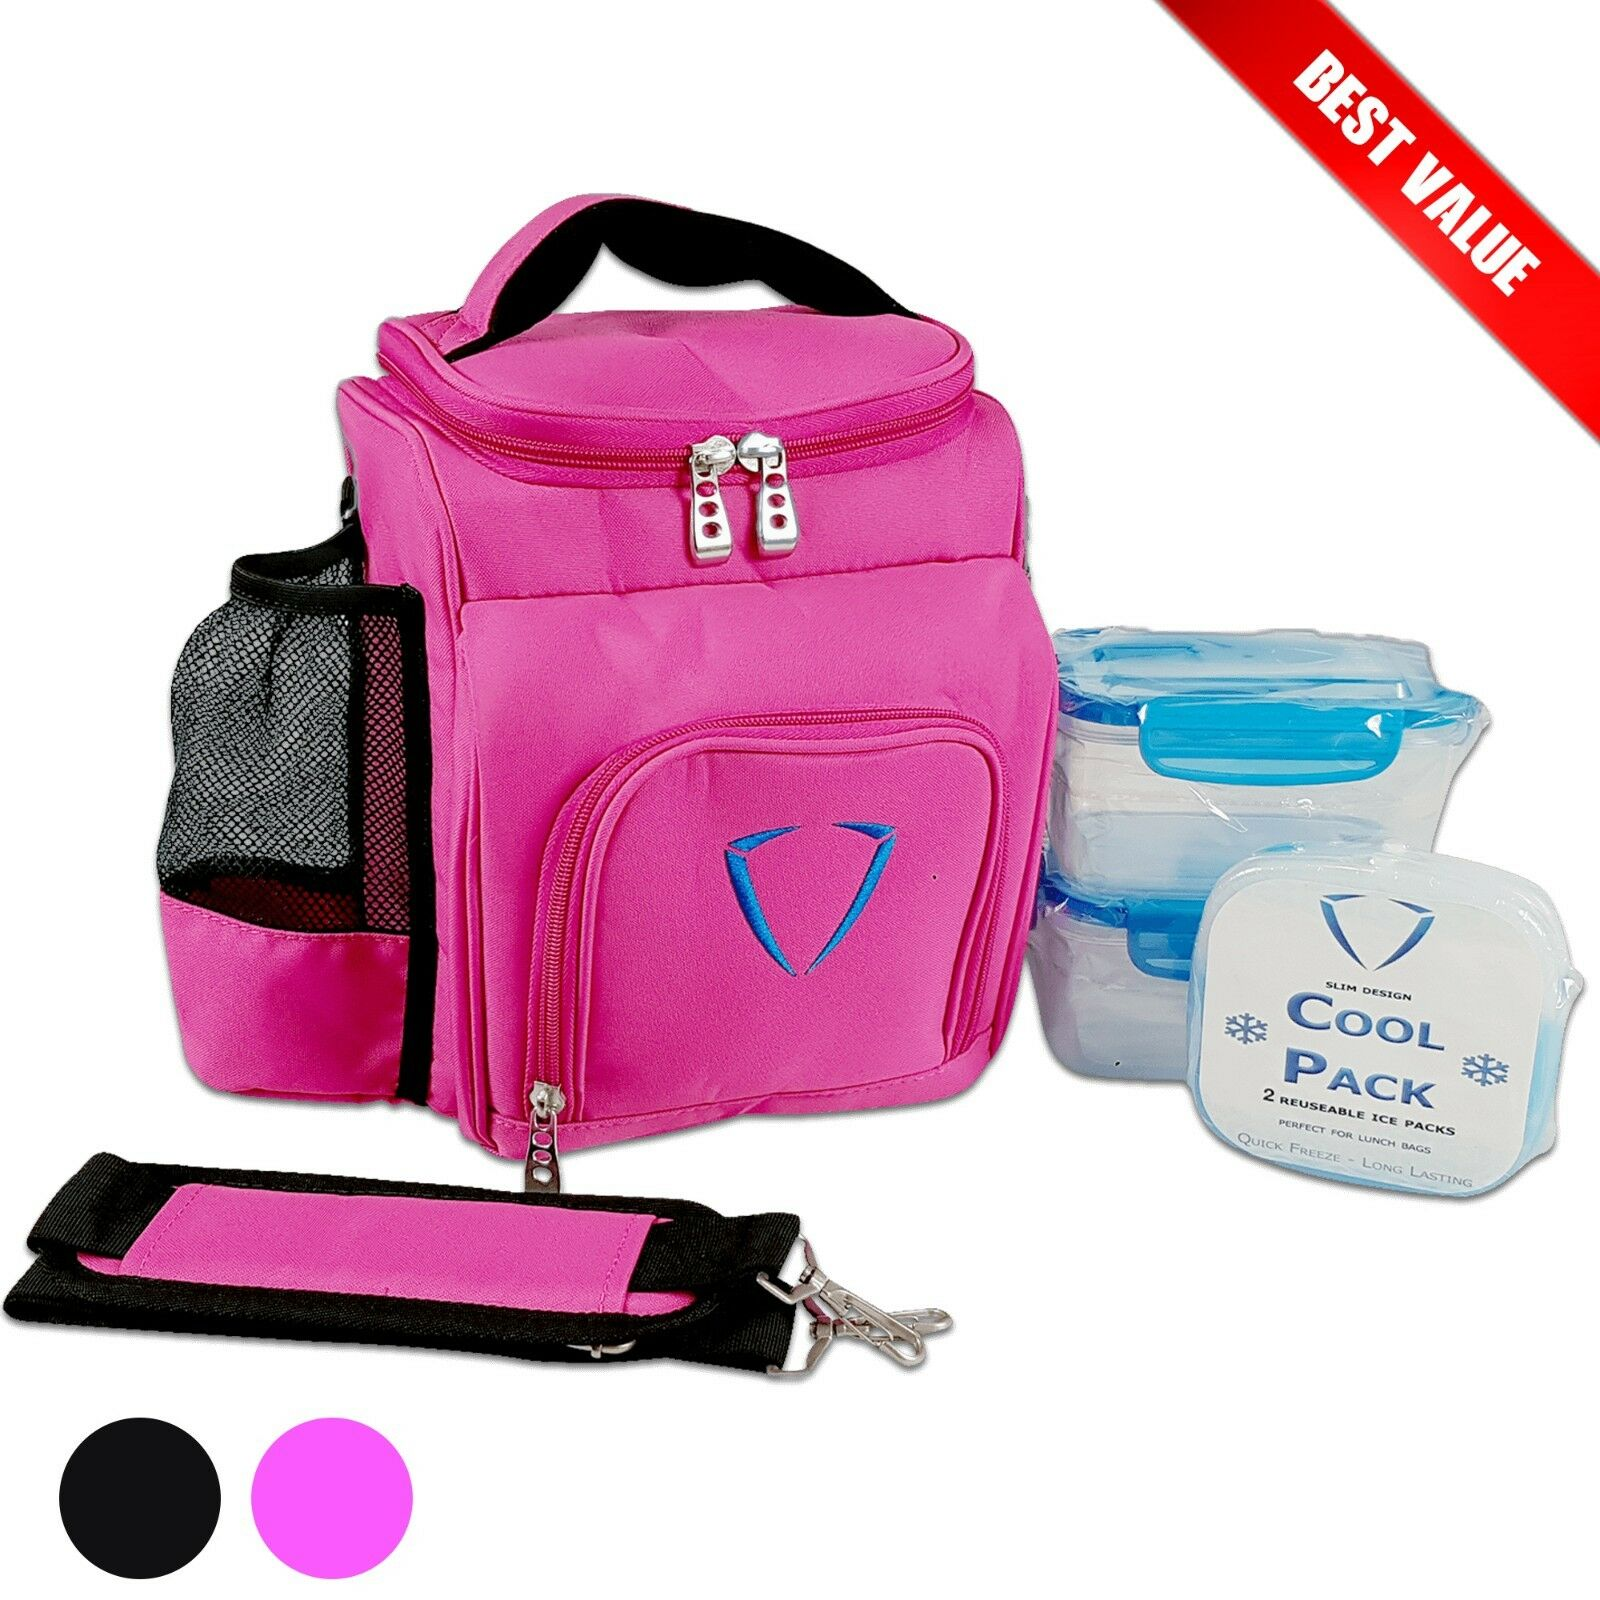 Lunch Bag Ladies Work Portable Insulated Carry Tote Cooler Gym Fitness for donna